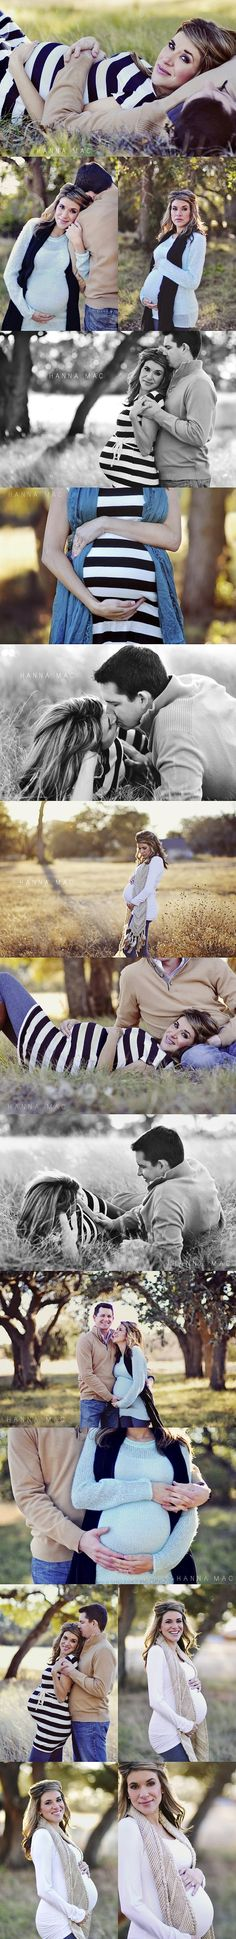 Best pregnancy pictures I